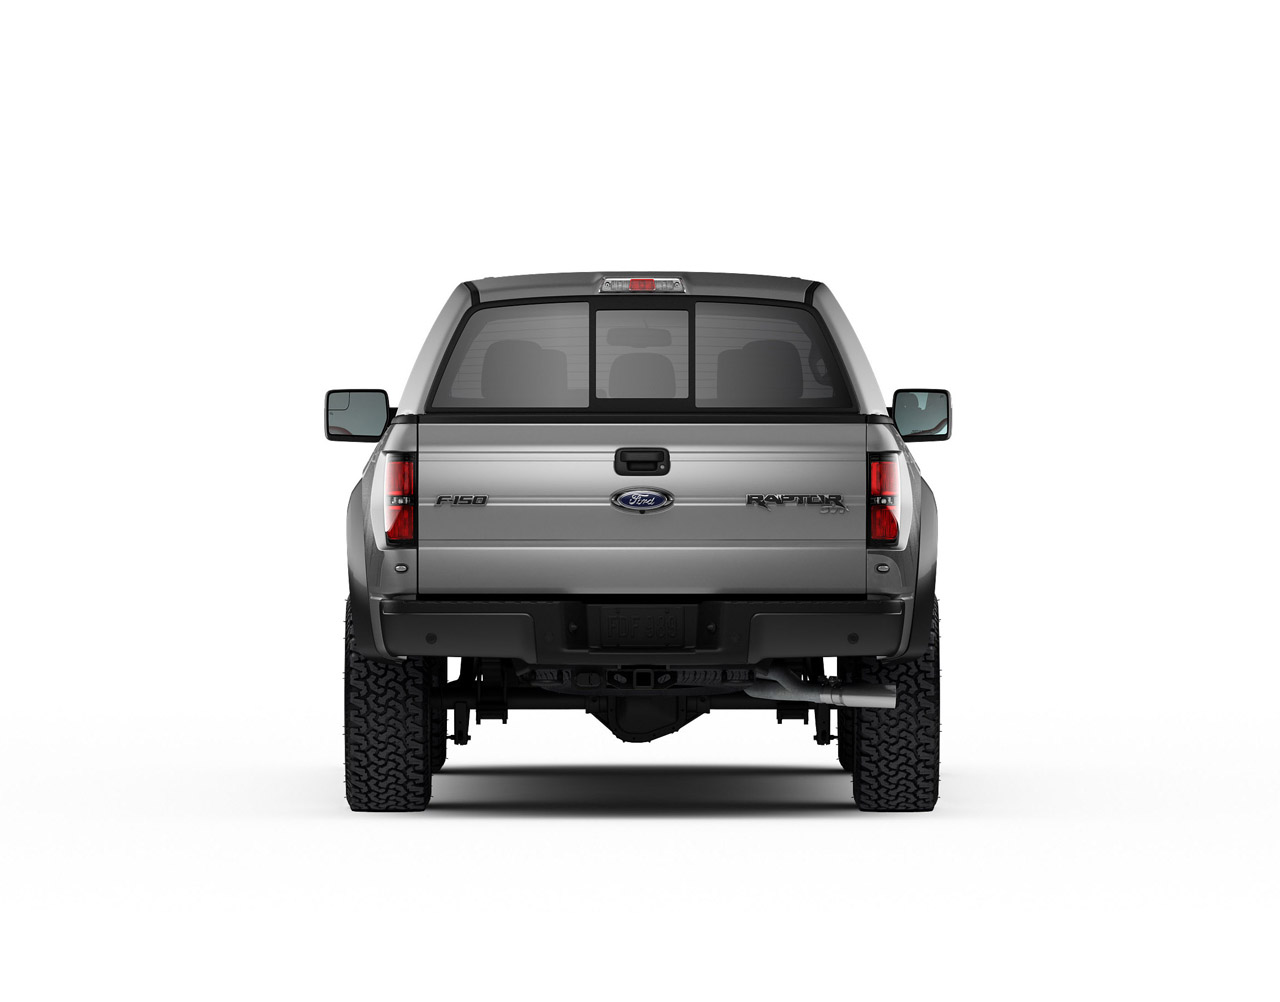 2013 Ford SVT Raptor Rear (Photo 38 of 39)